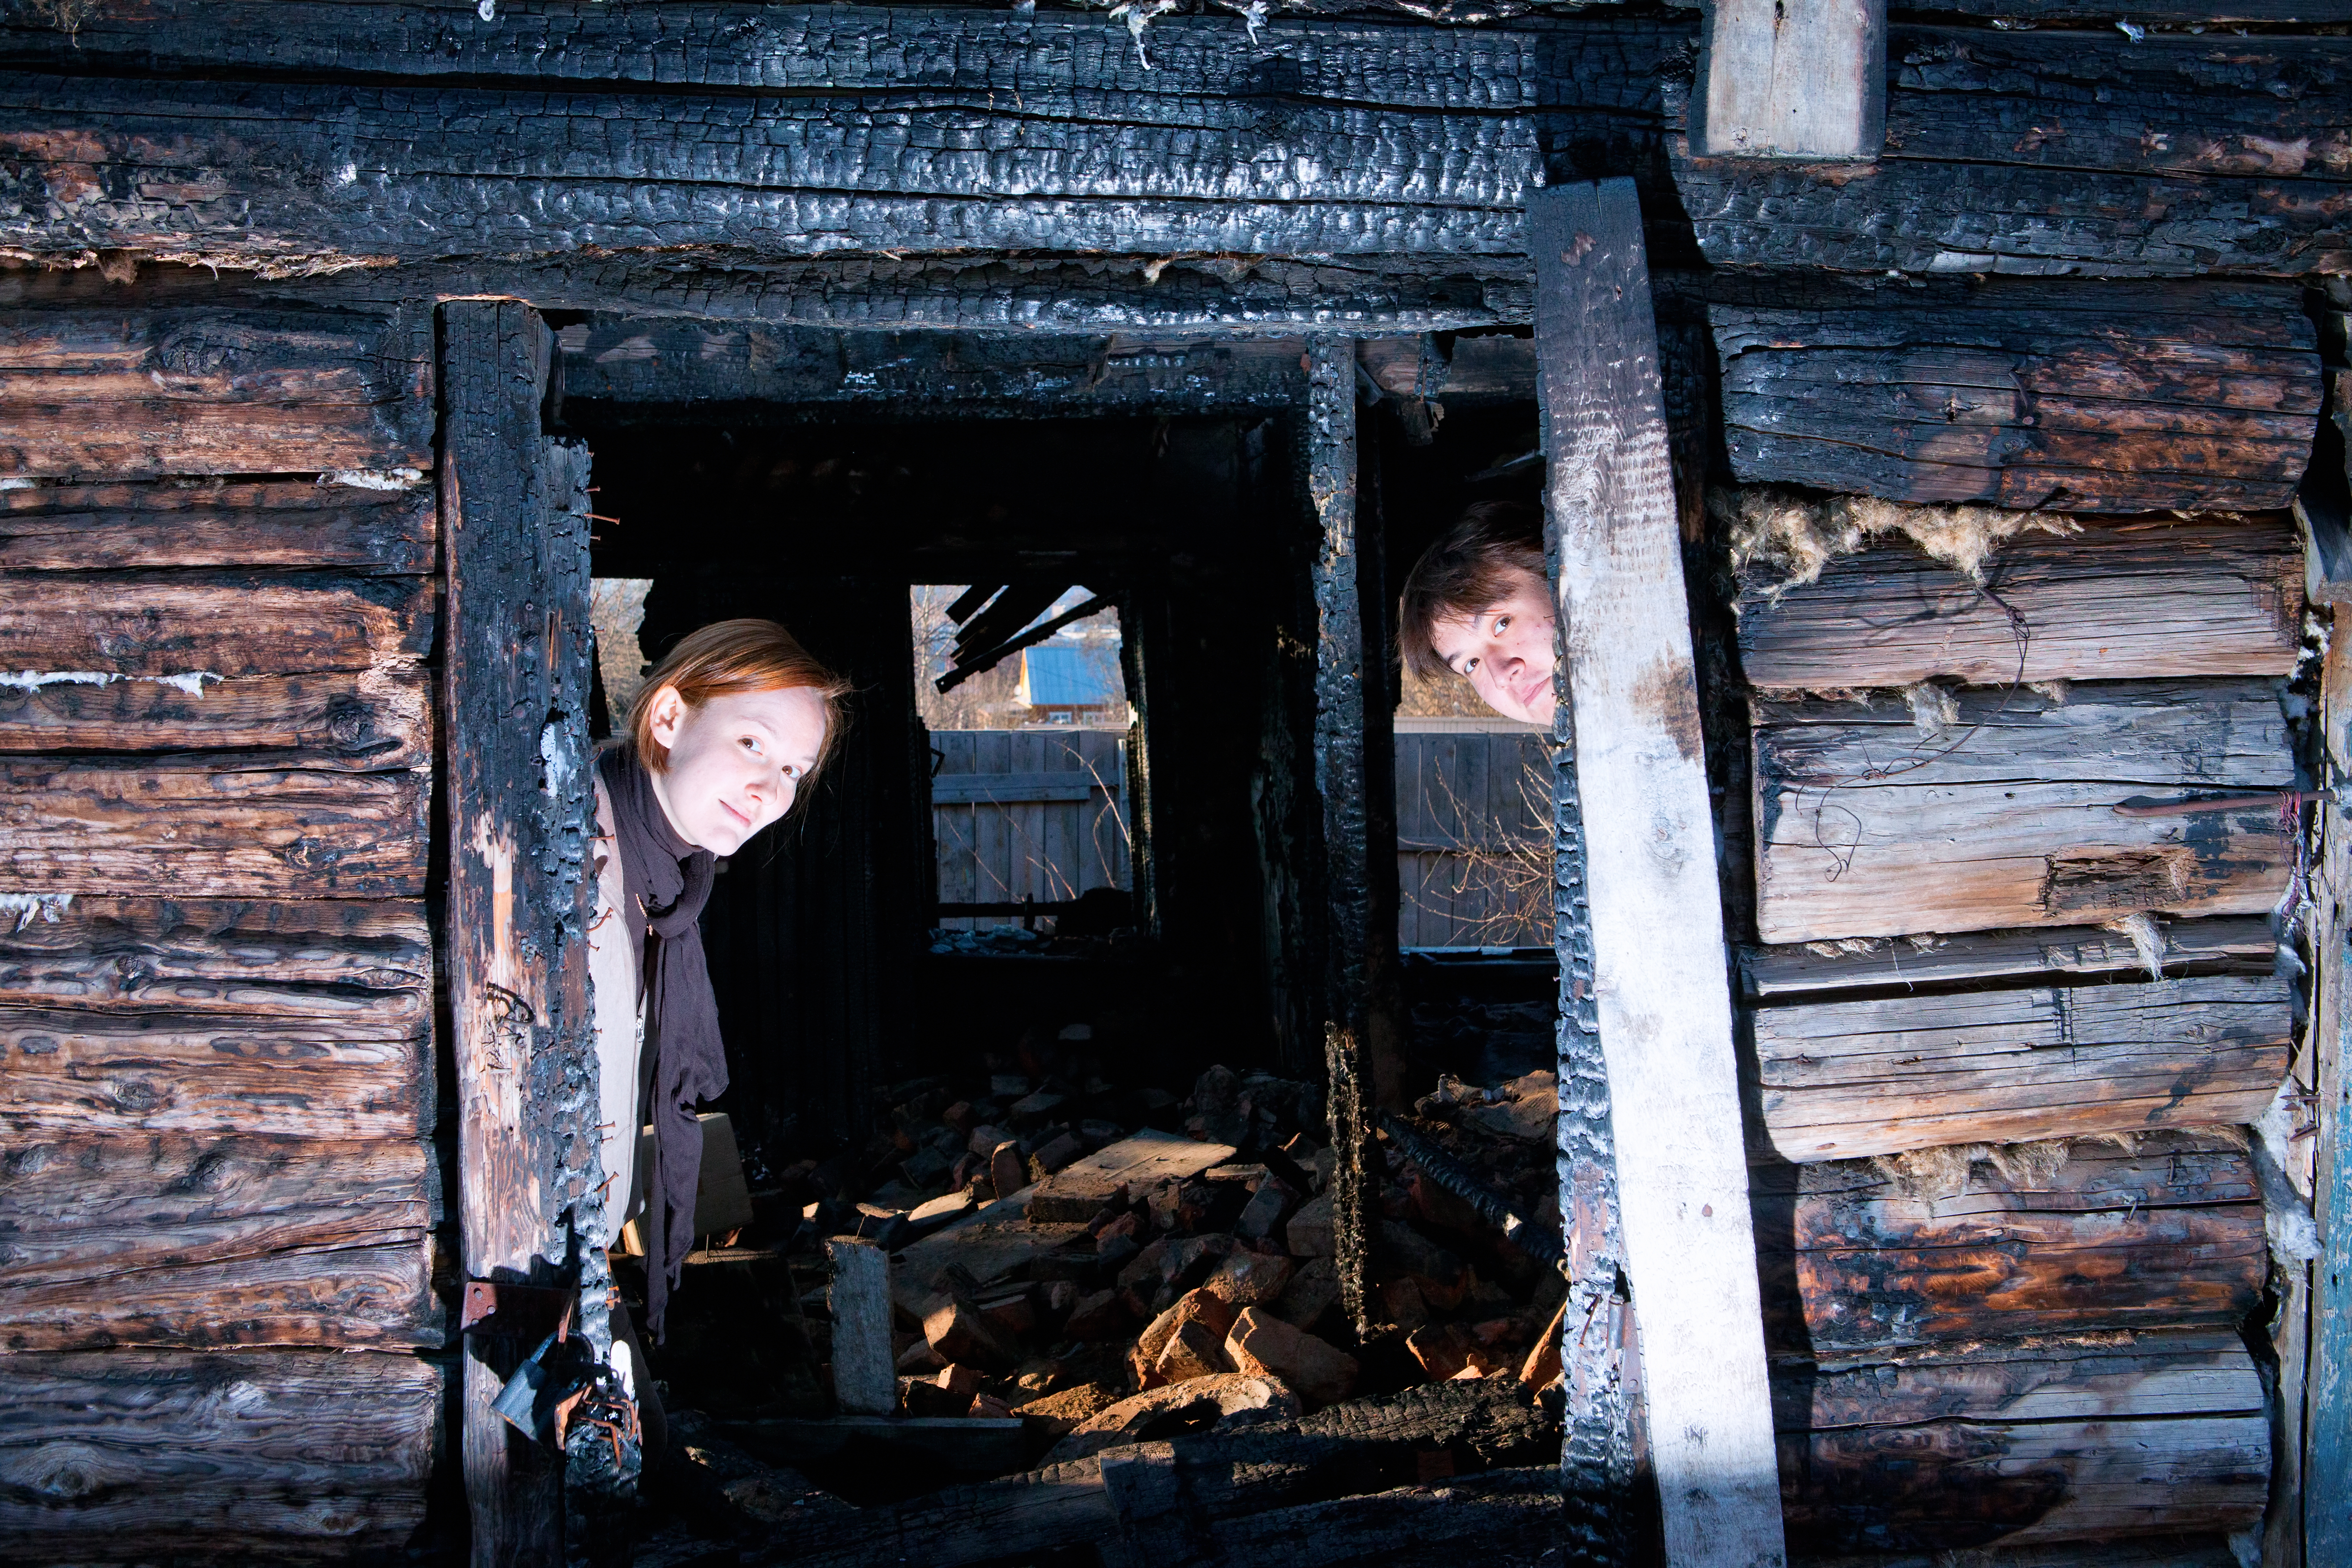 In the burned house photo